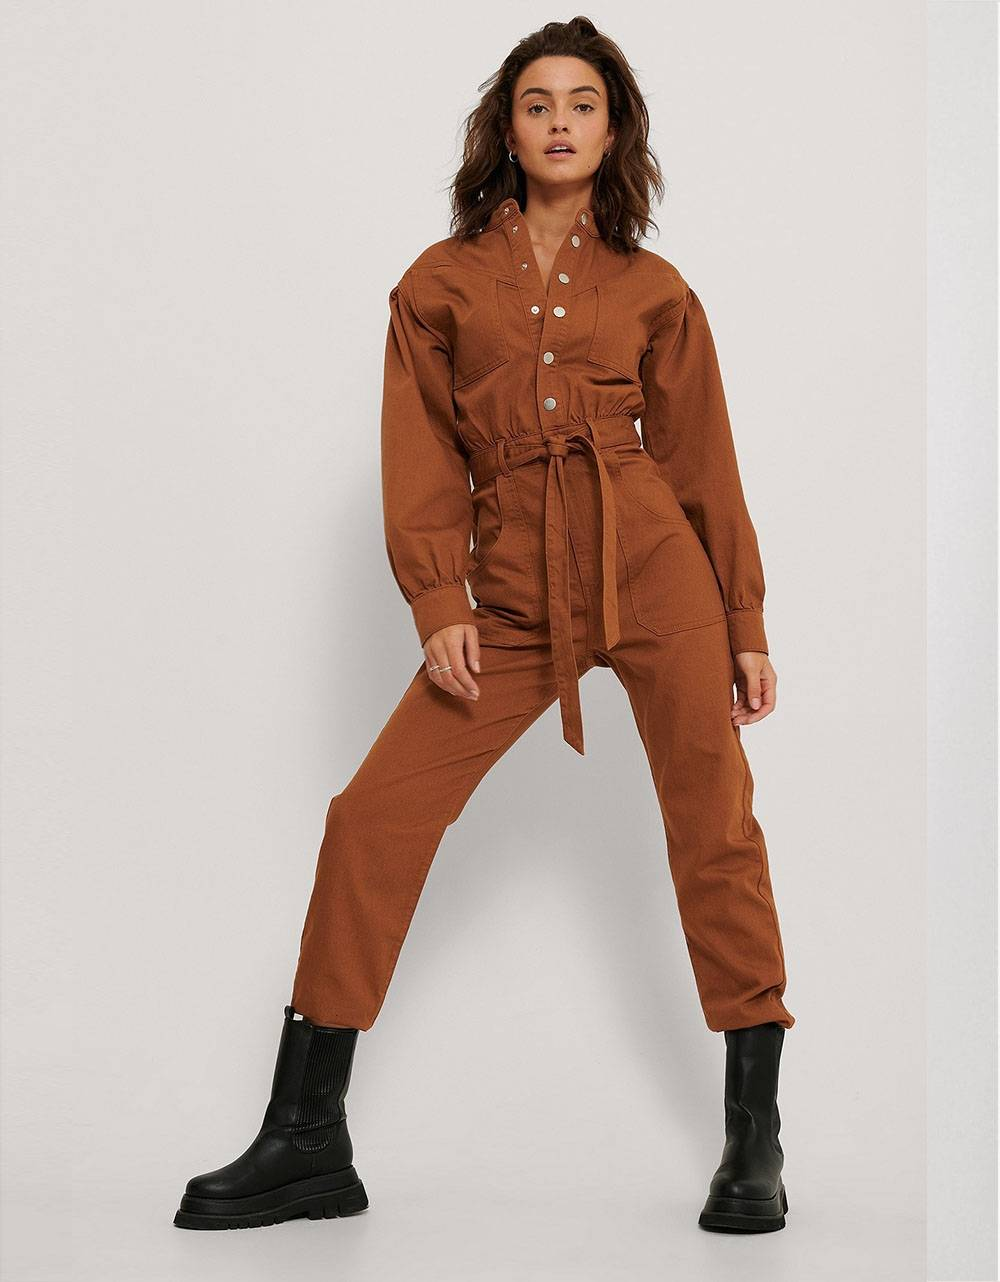 NA-KD colored denim jumpsuit - rust NA-KD Jeans 69,67 €